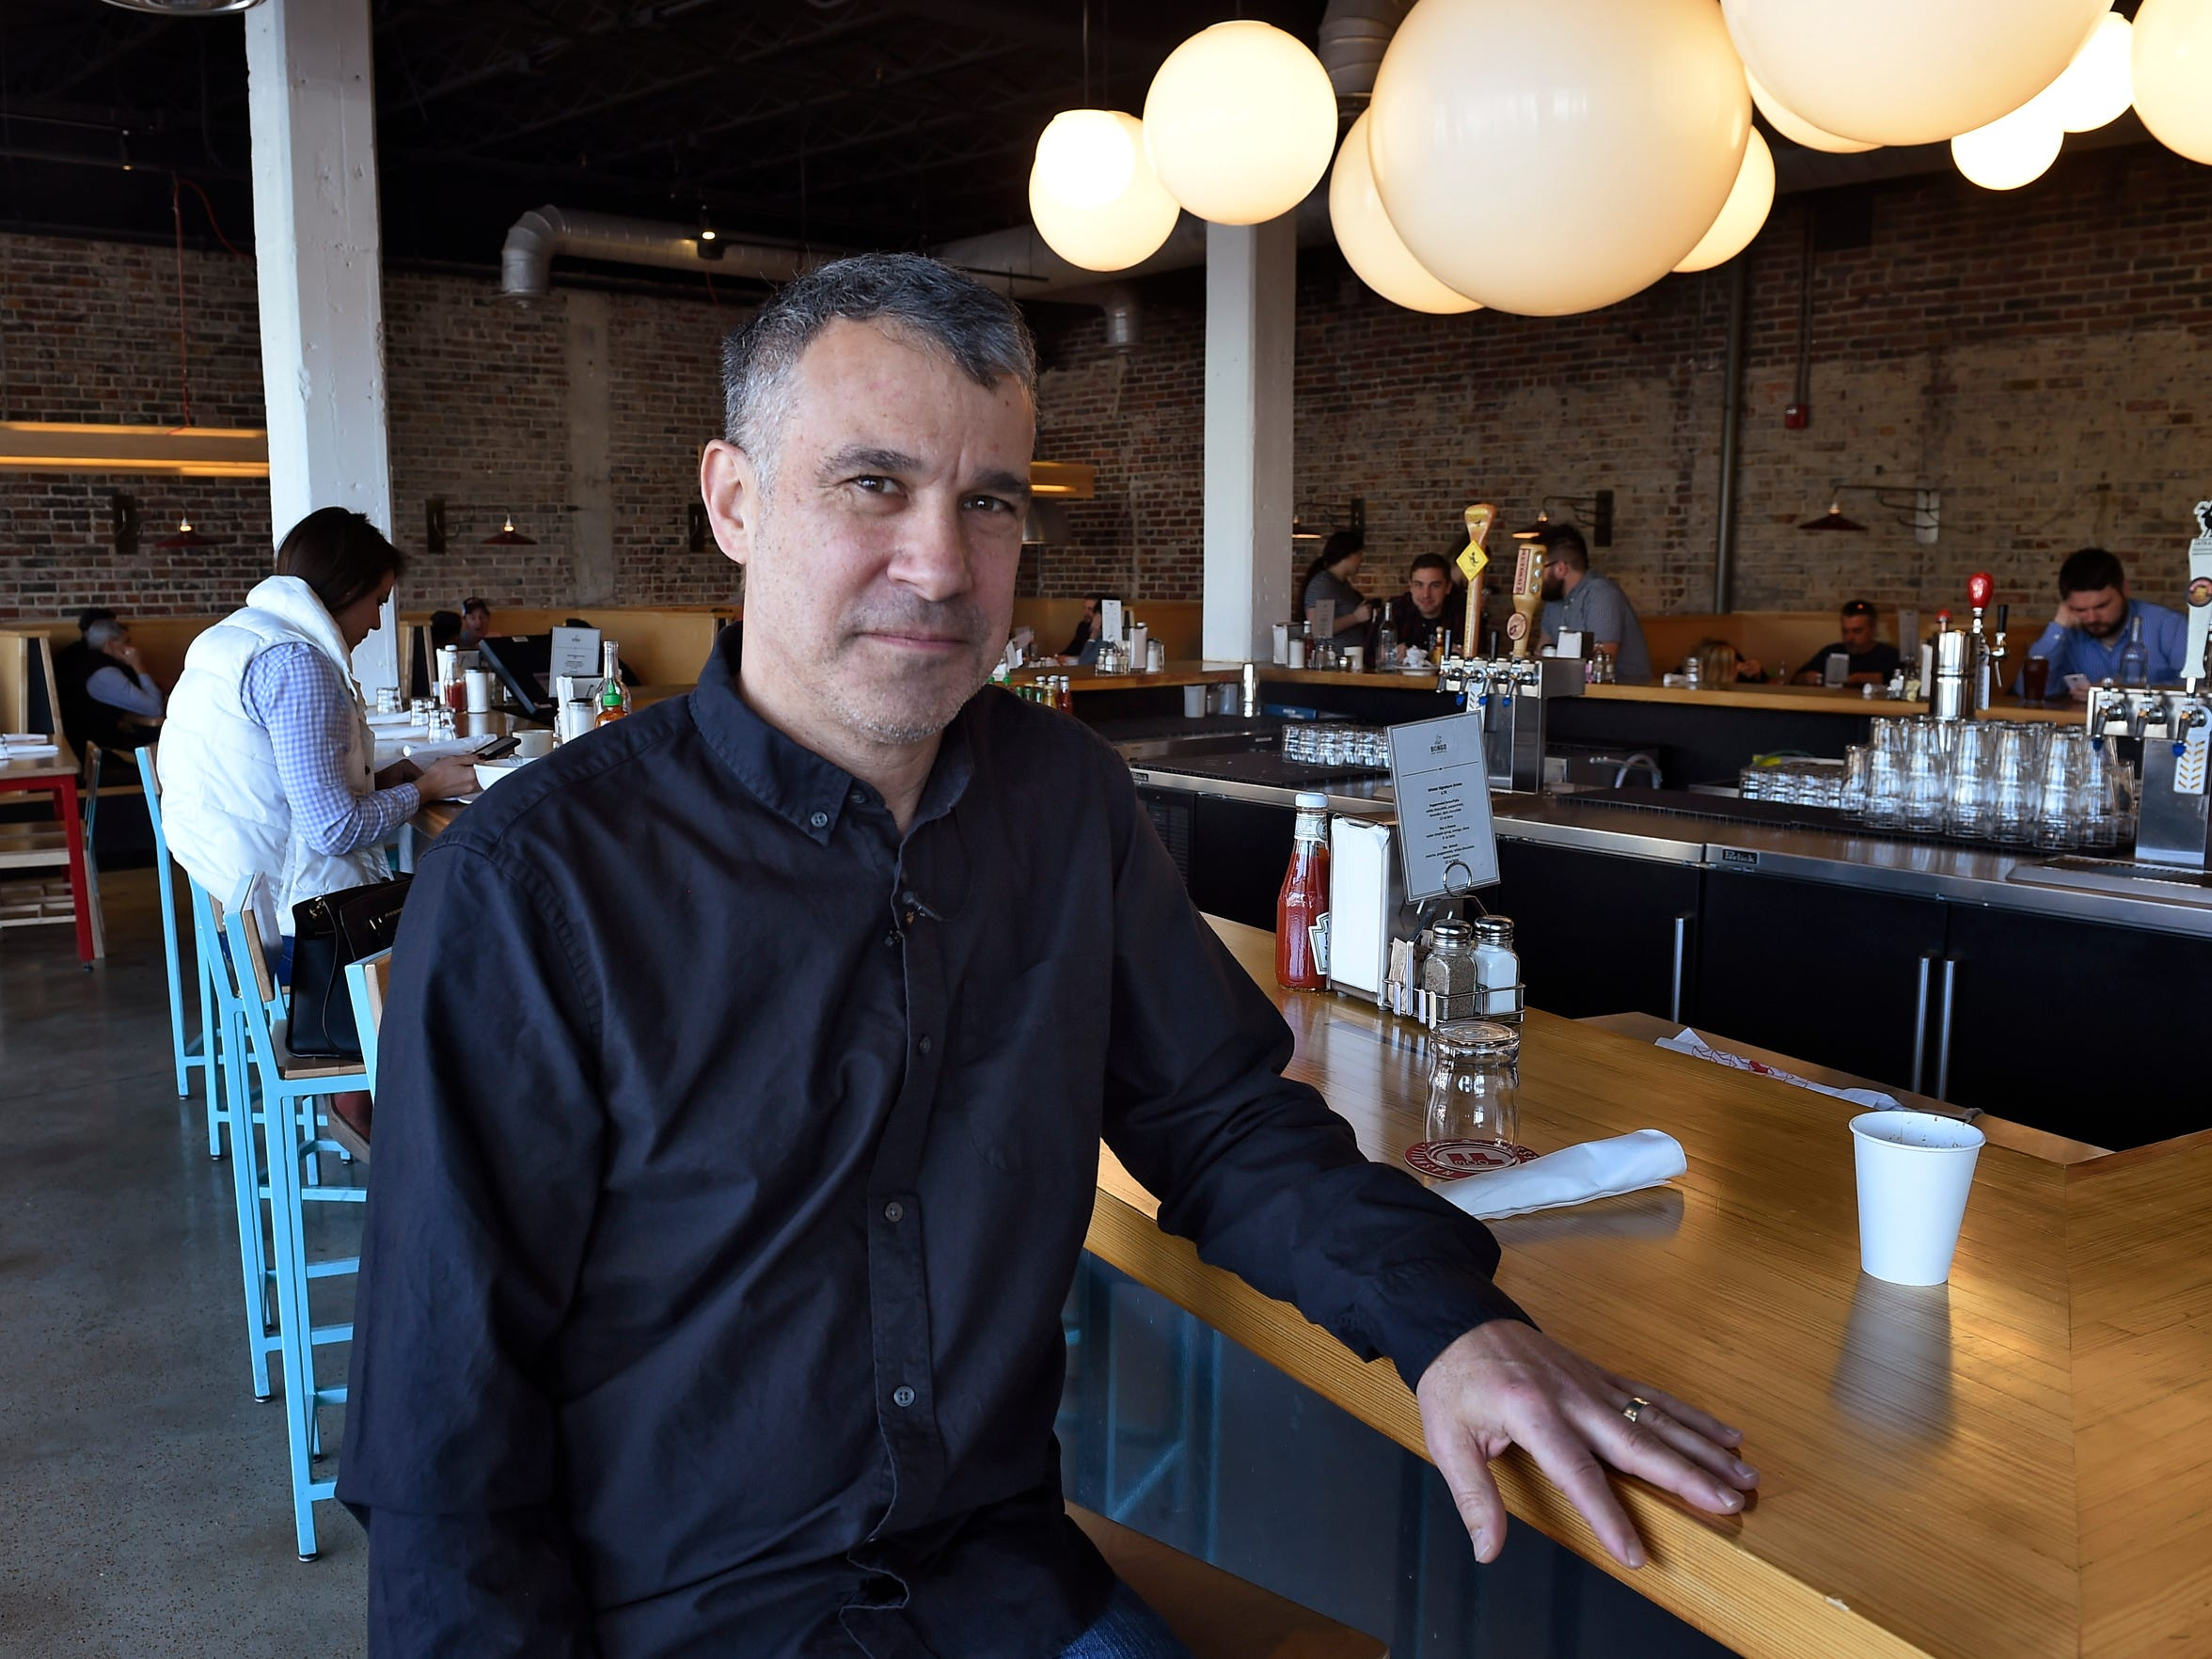 Bob Bernstein is the owner of the restaurant group